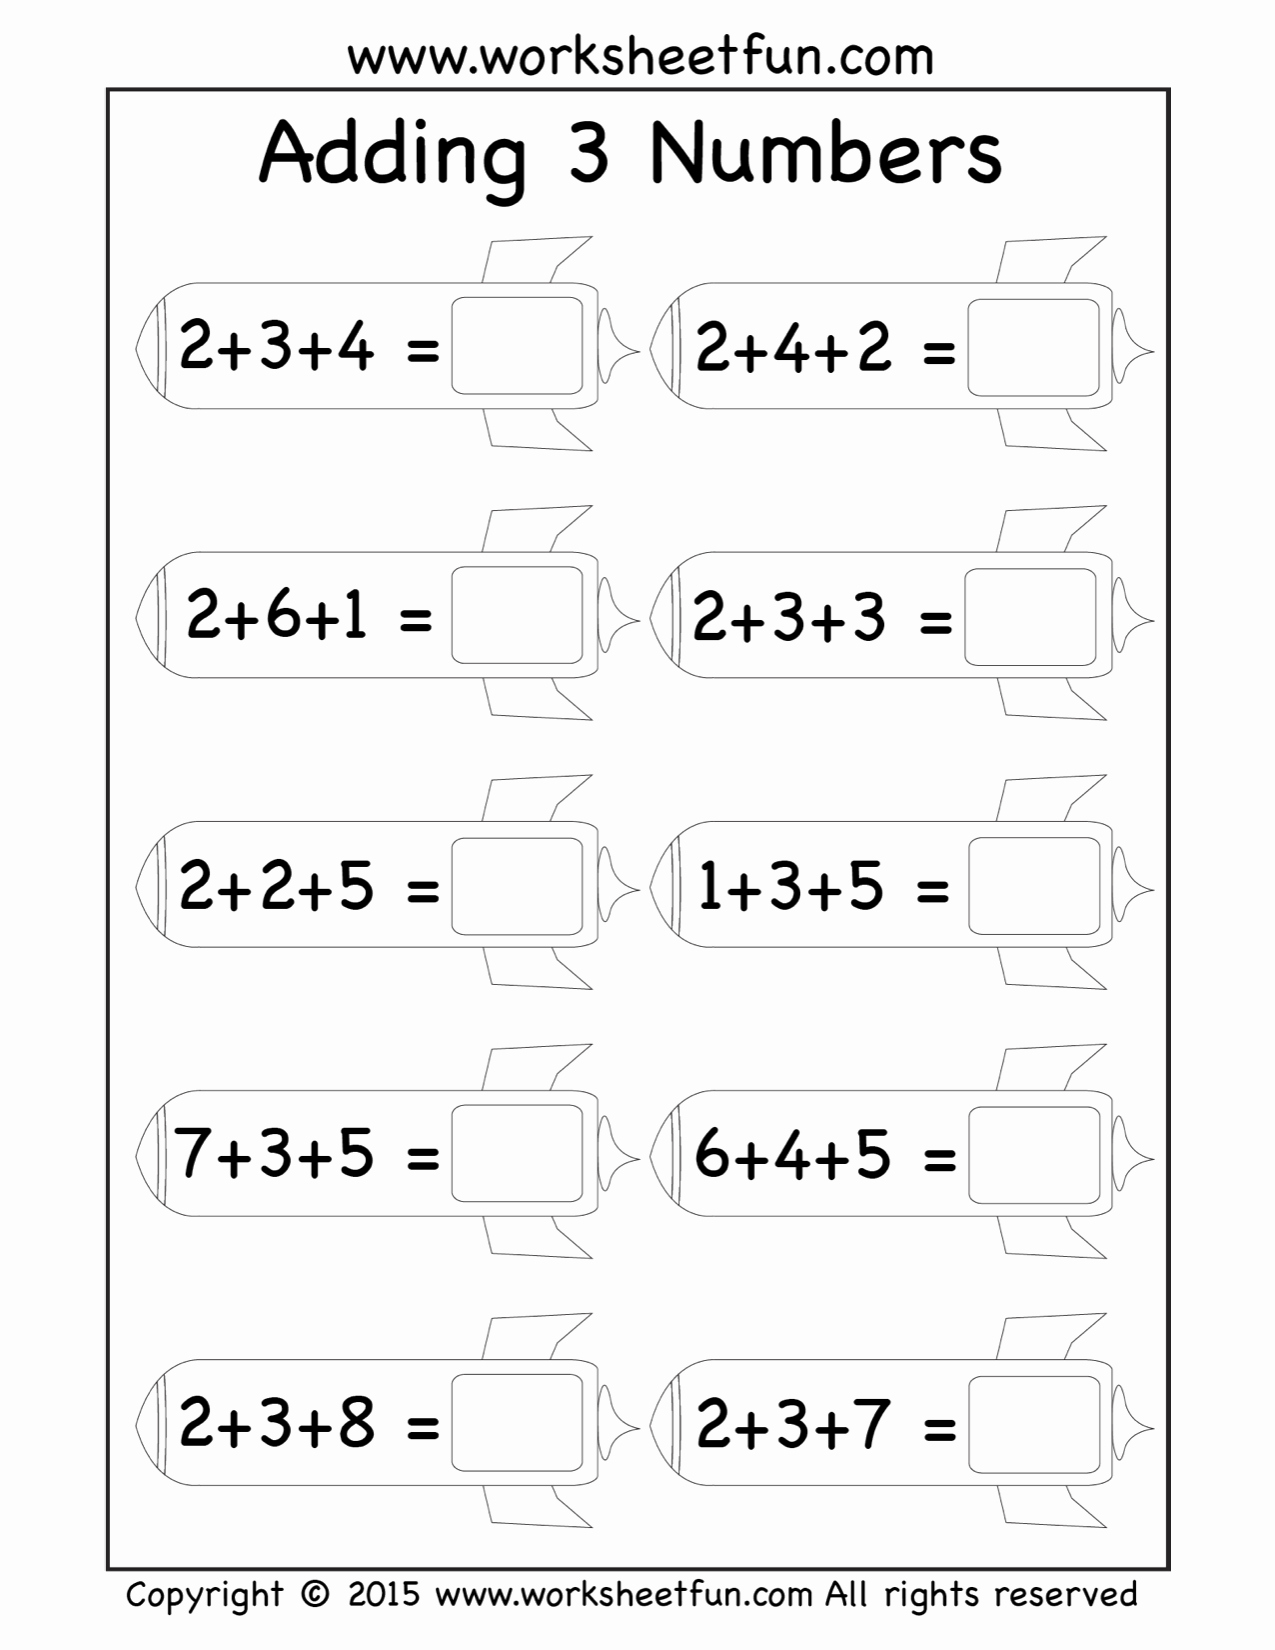 3 Addends Worksheets Best Of Free Three Addend Worksheets Adding 3 Numbers Rockets